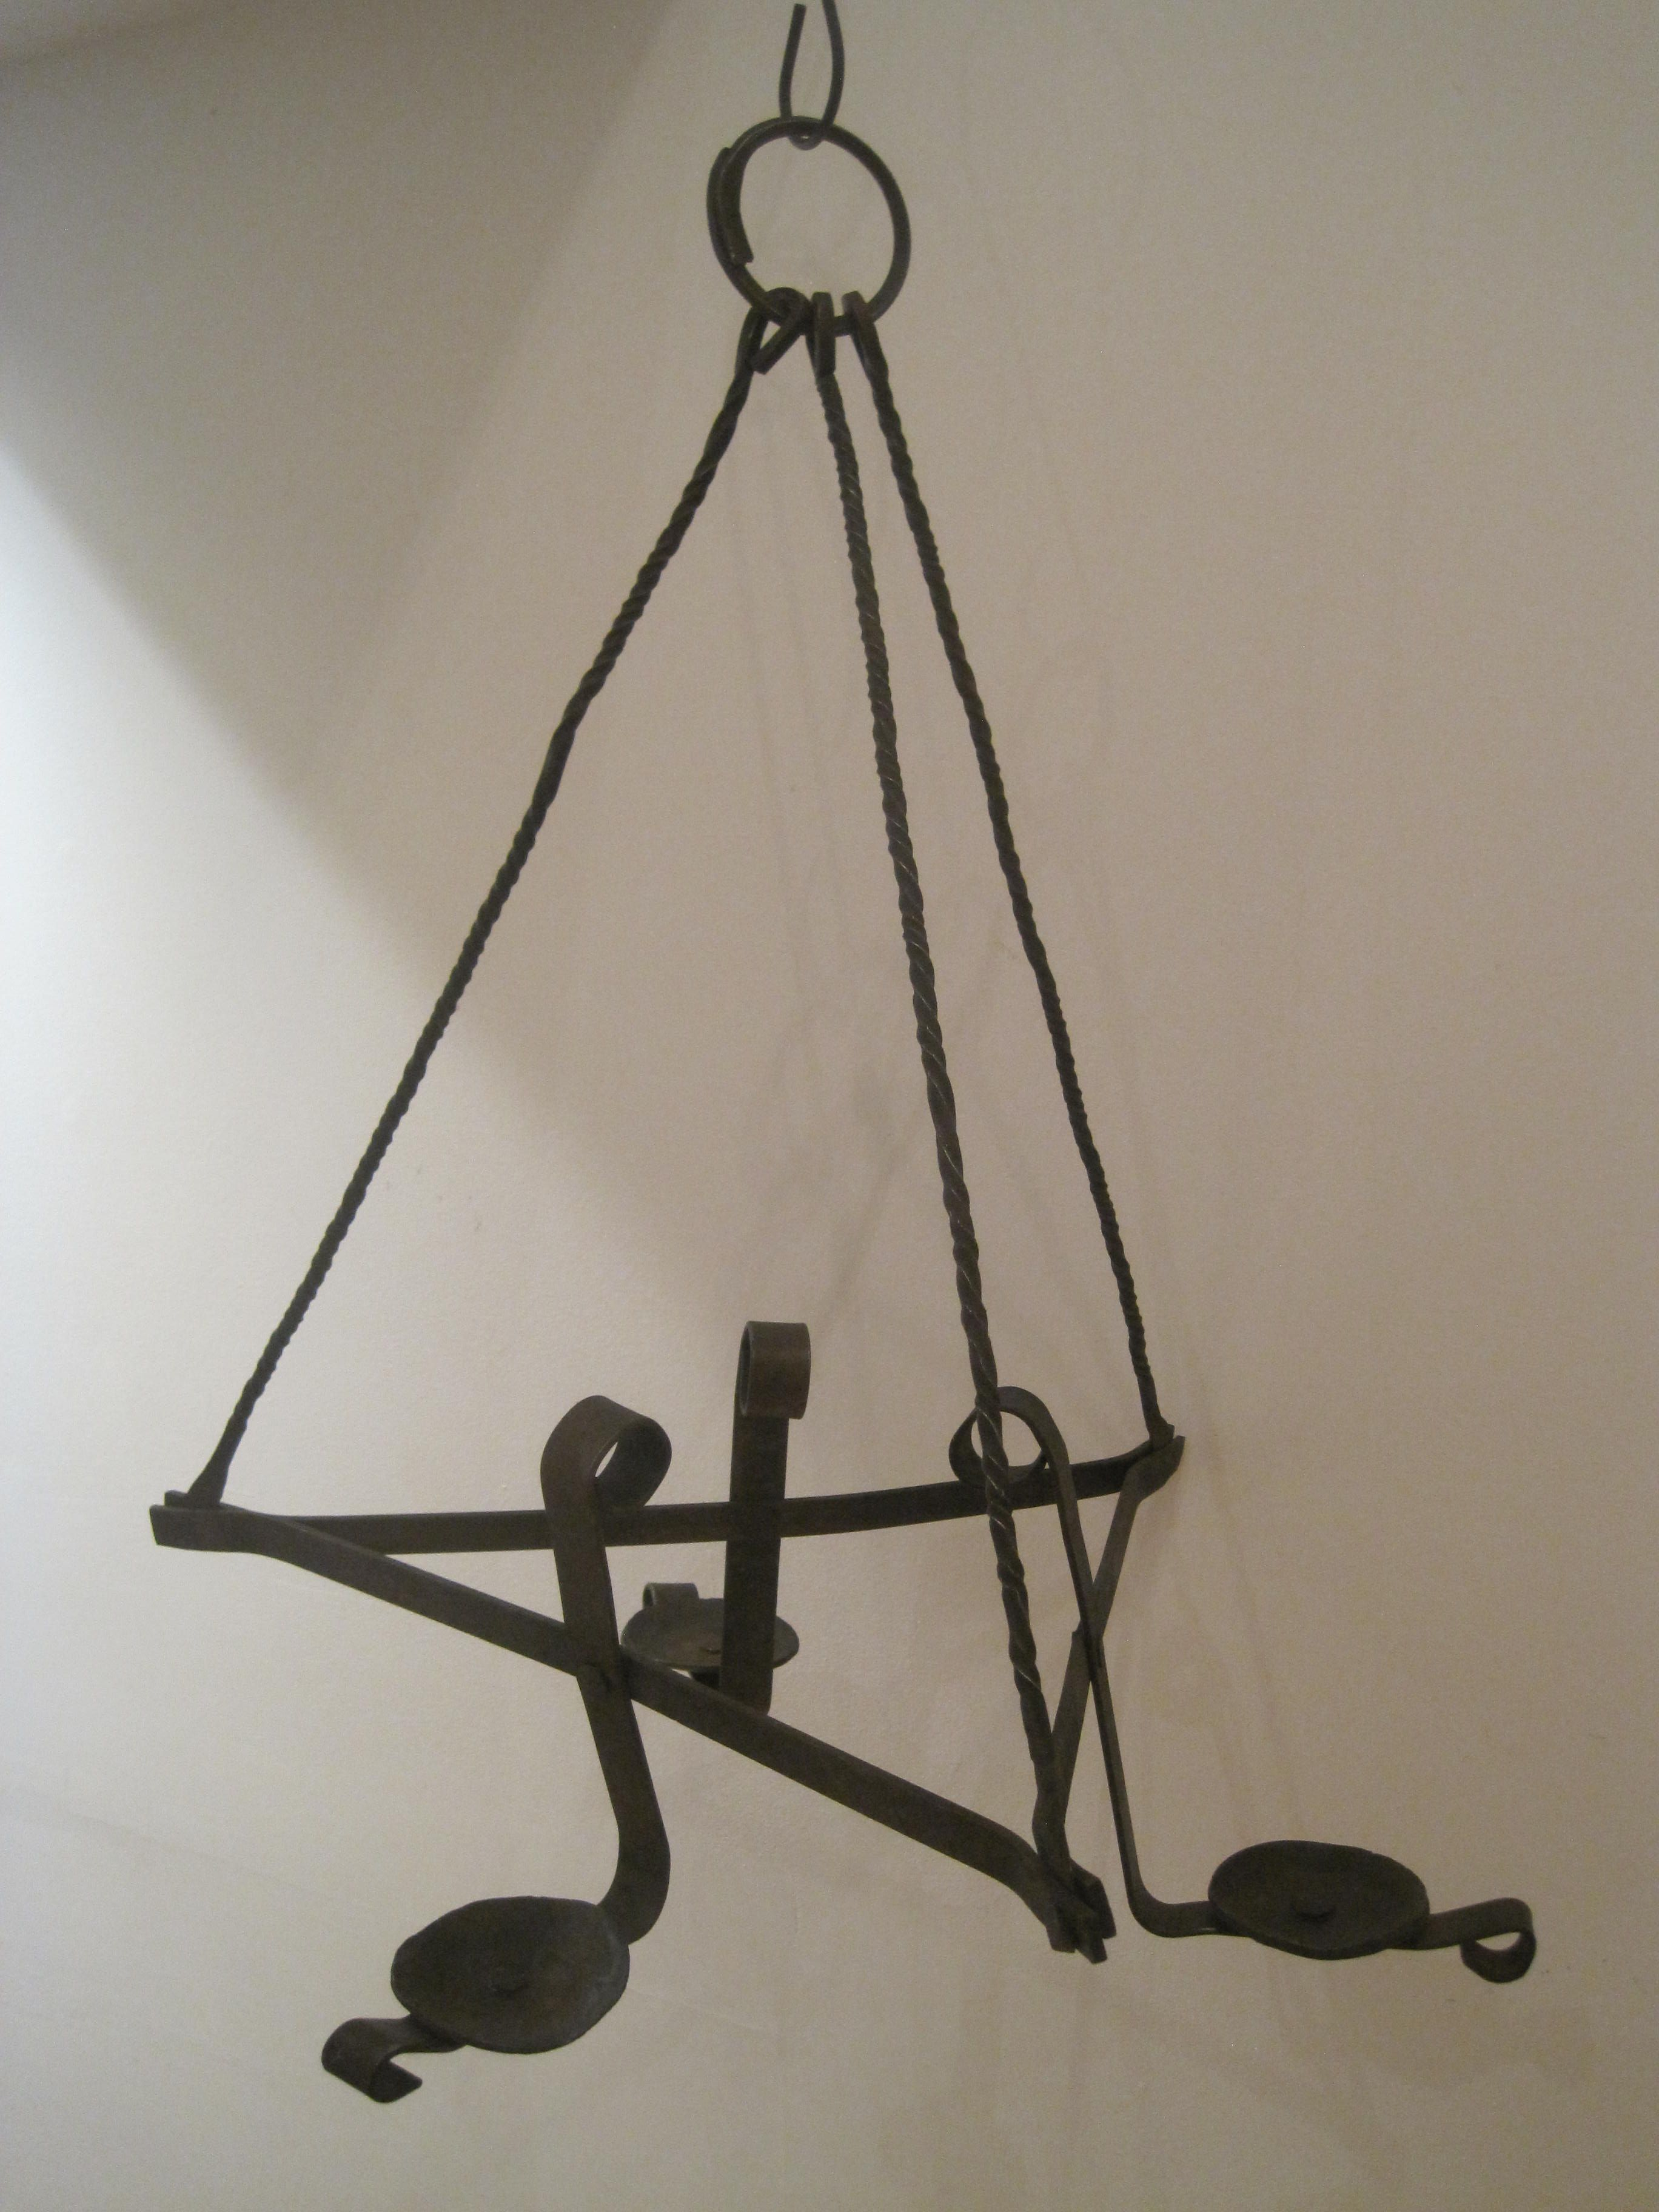 Antique 1700 s Revolutionary War Era Wrought Iron Candle